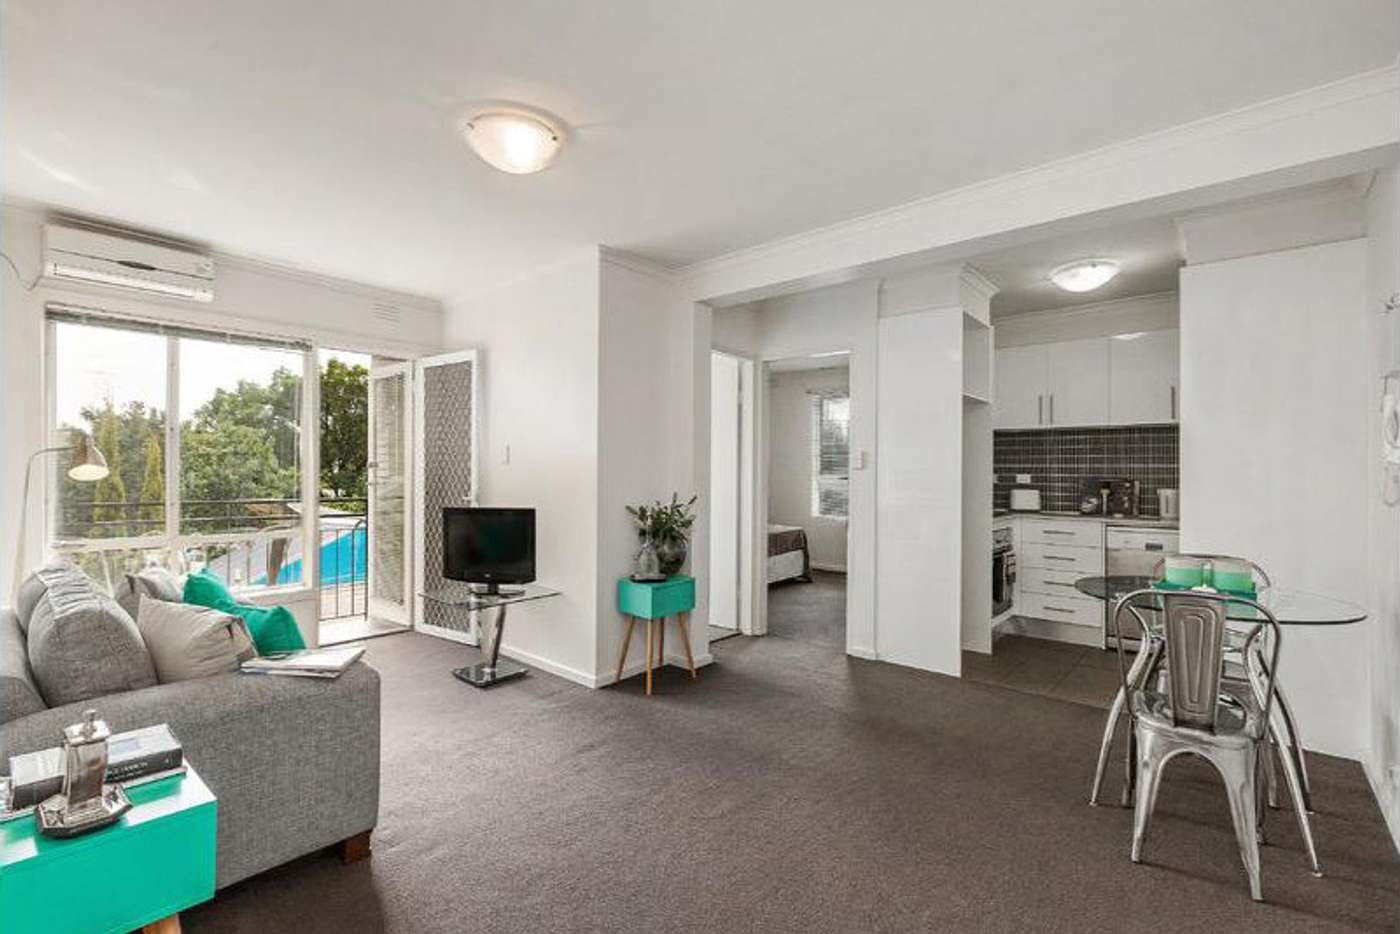 Main view of Homely apartment listing, 5/10 Schild Street, Yarraville VIC 3013